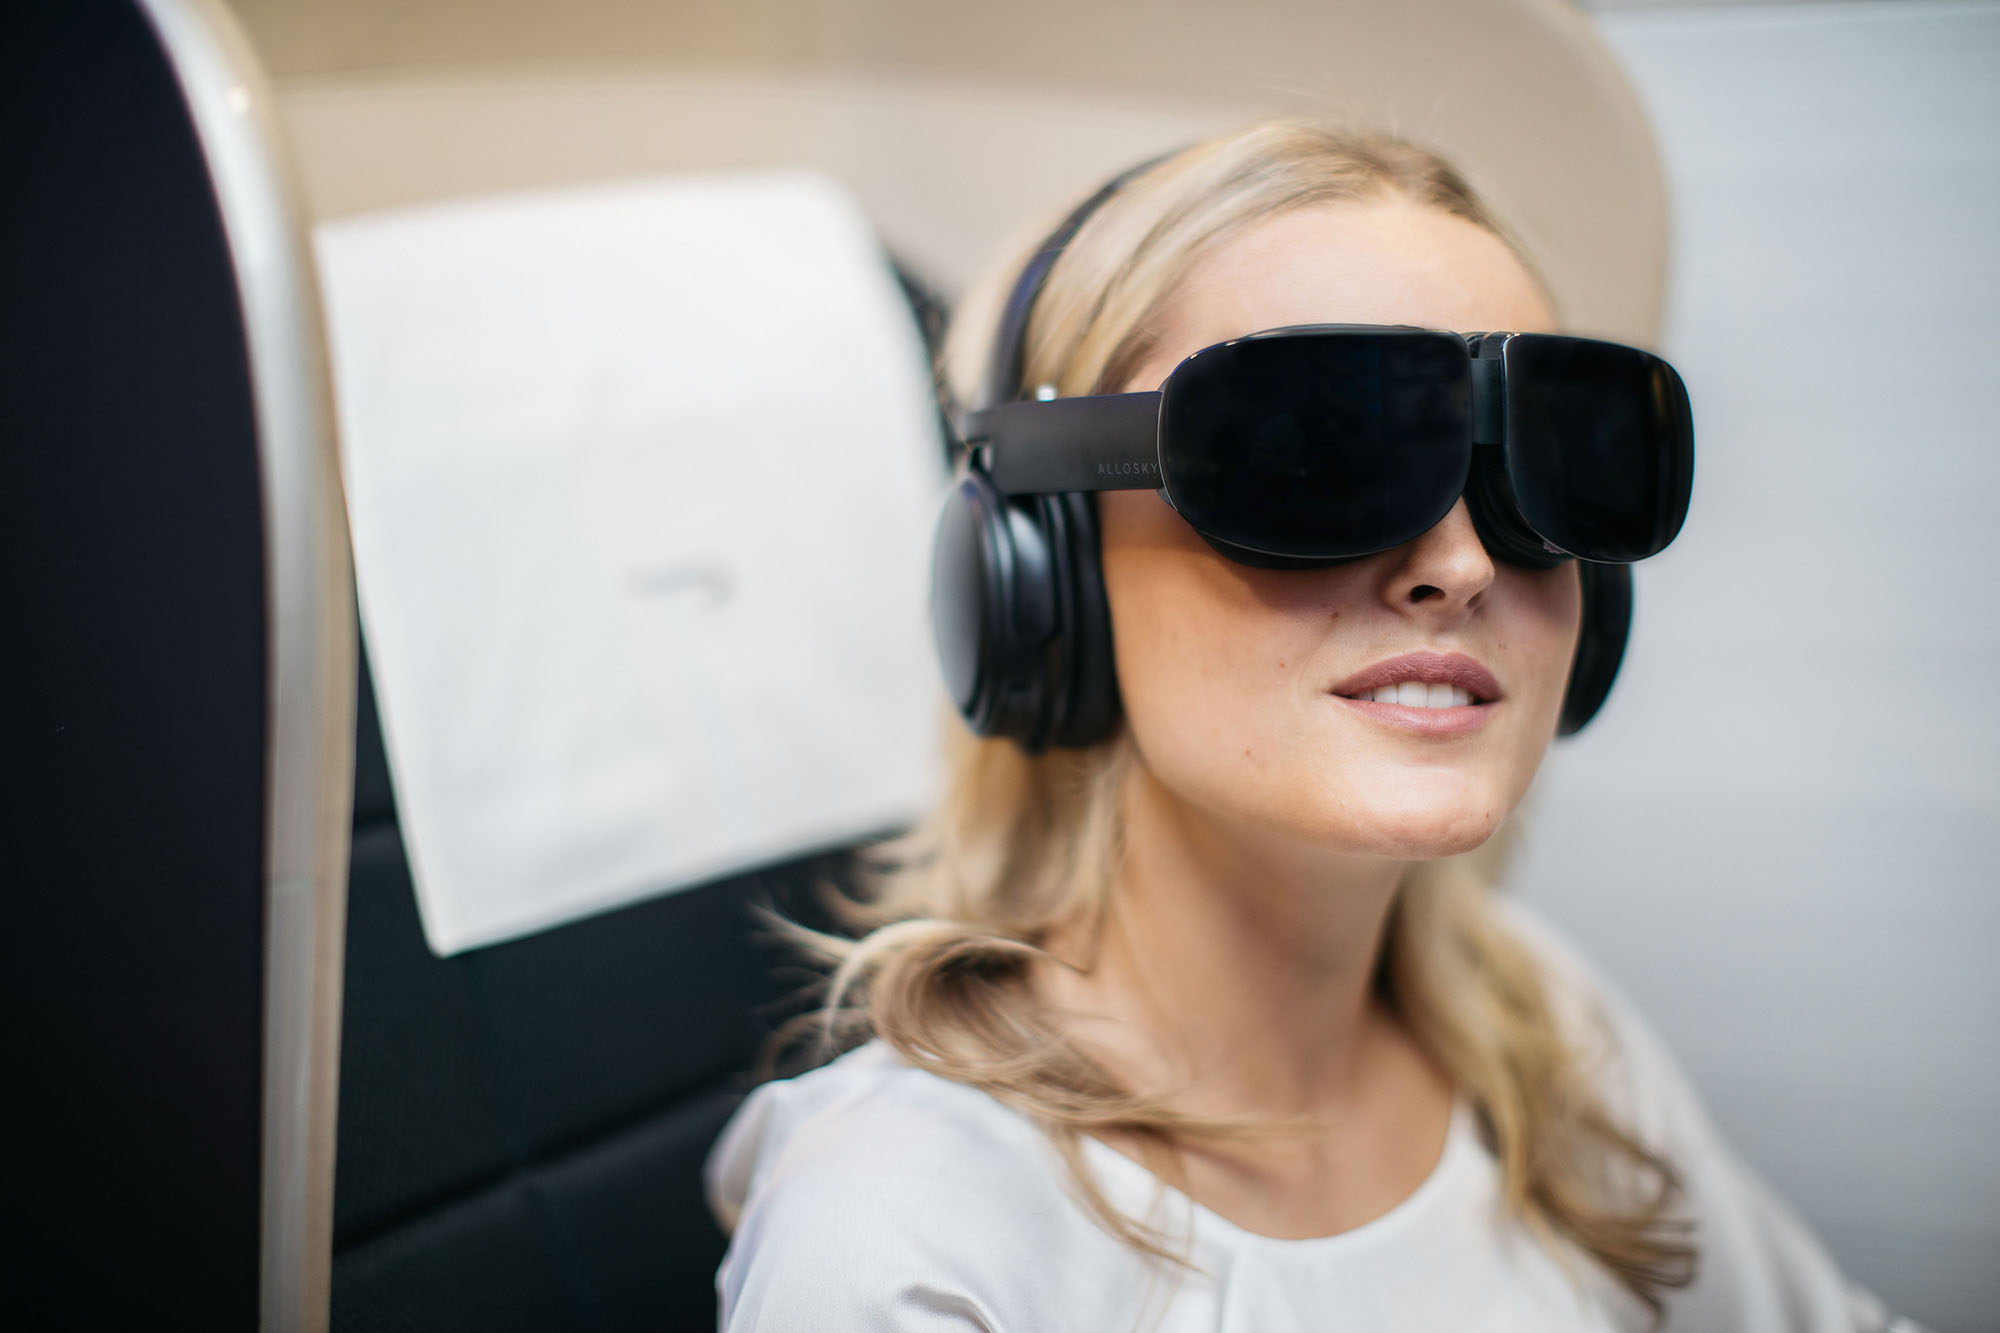 BA trials ne virtual reality headsets for passengers